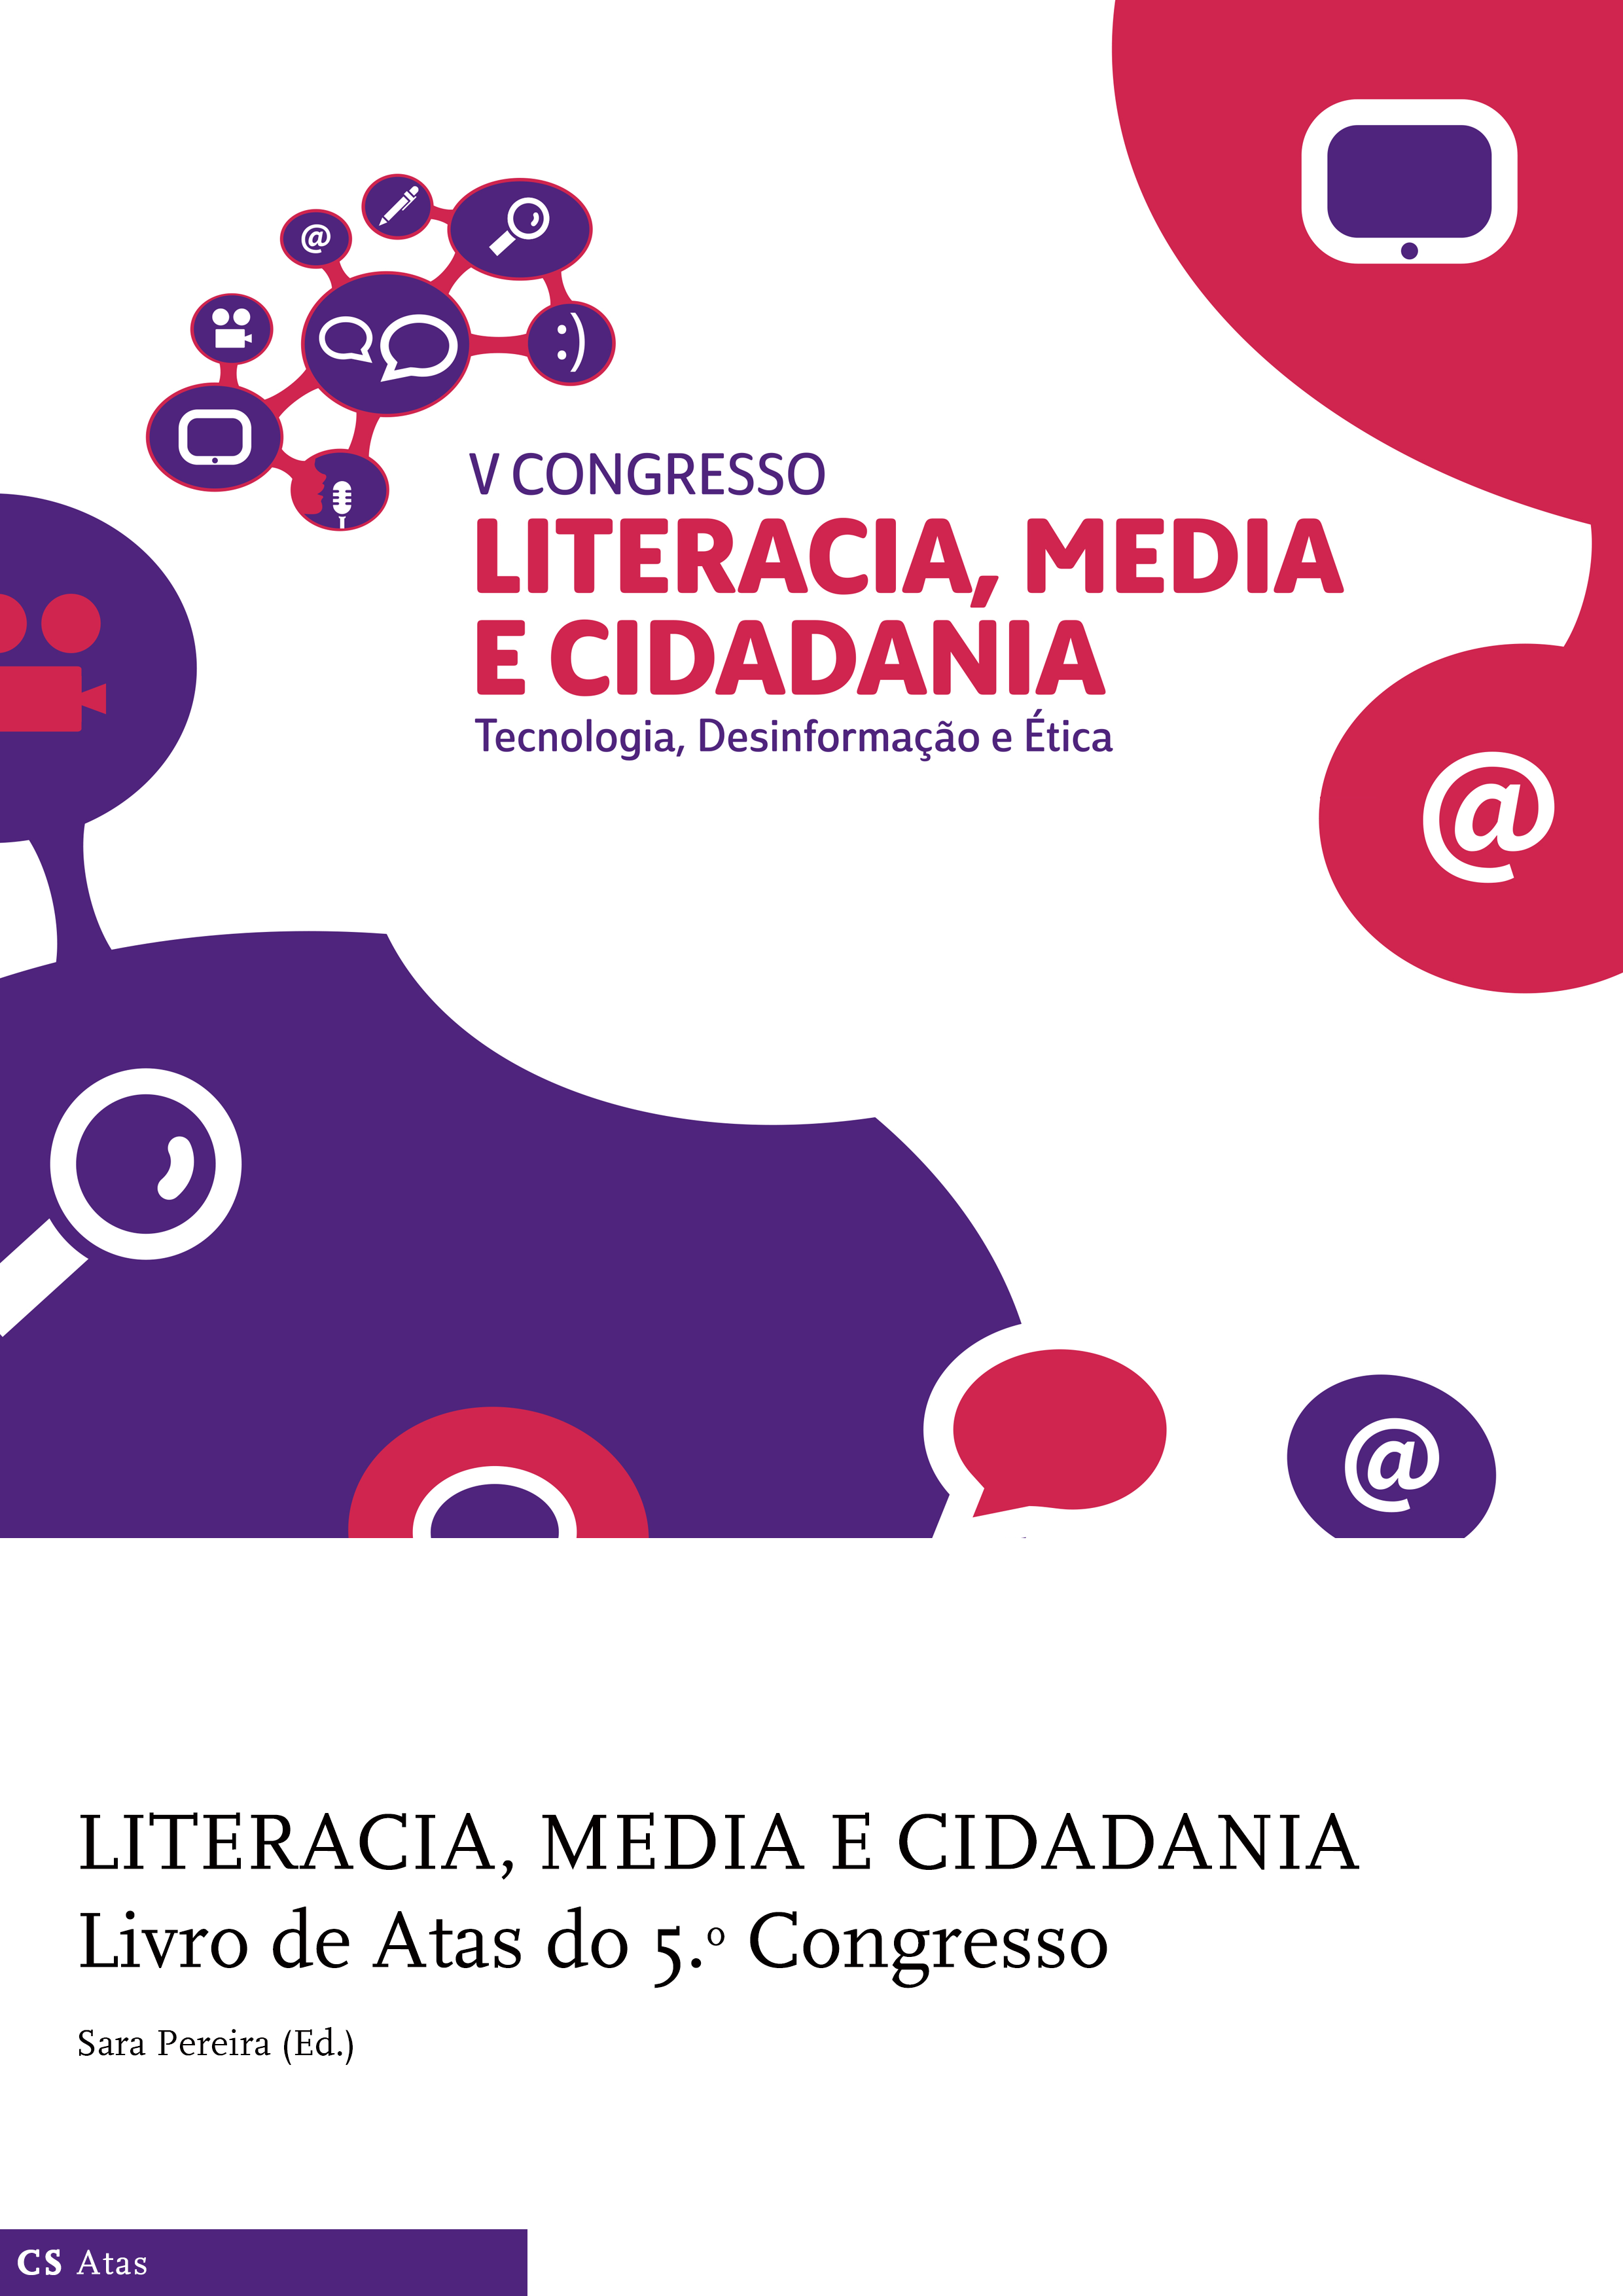 The conference proceedings of the 5th Congress Literacy, Media and Citizenship published